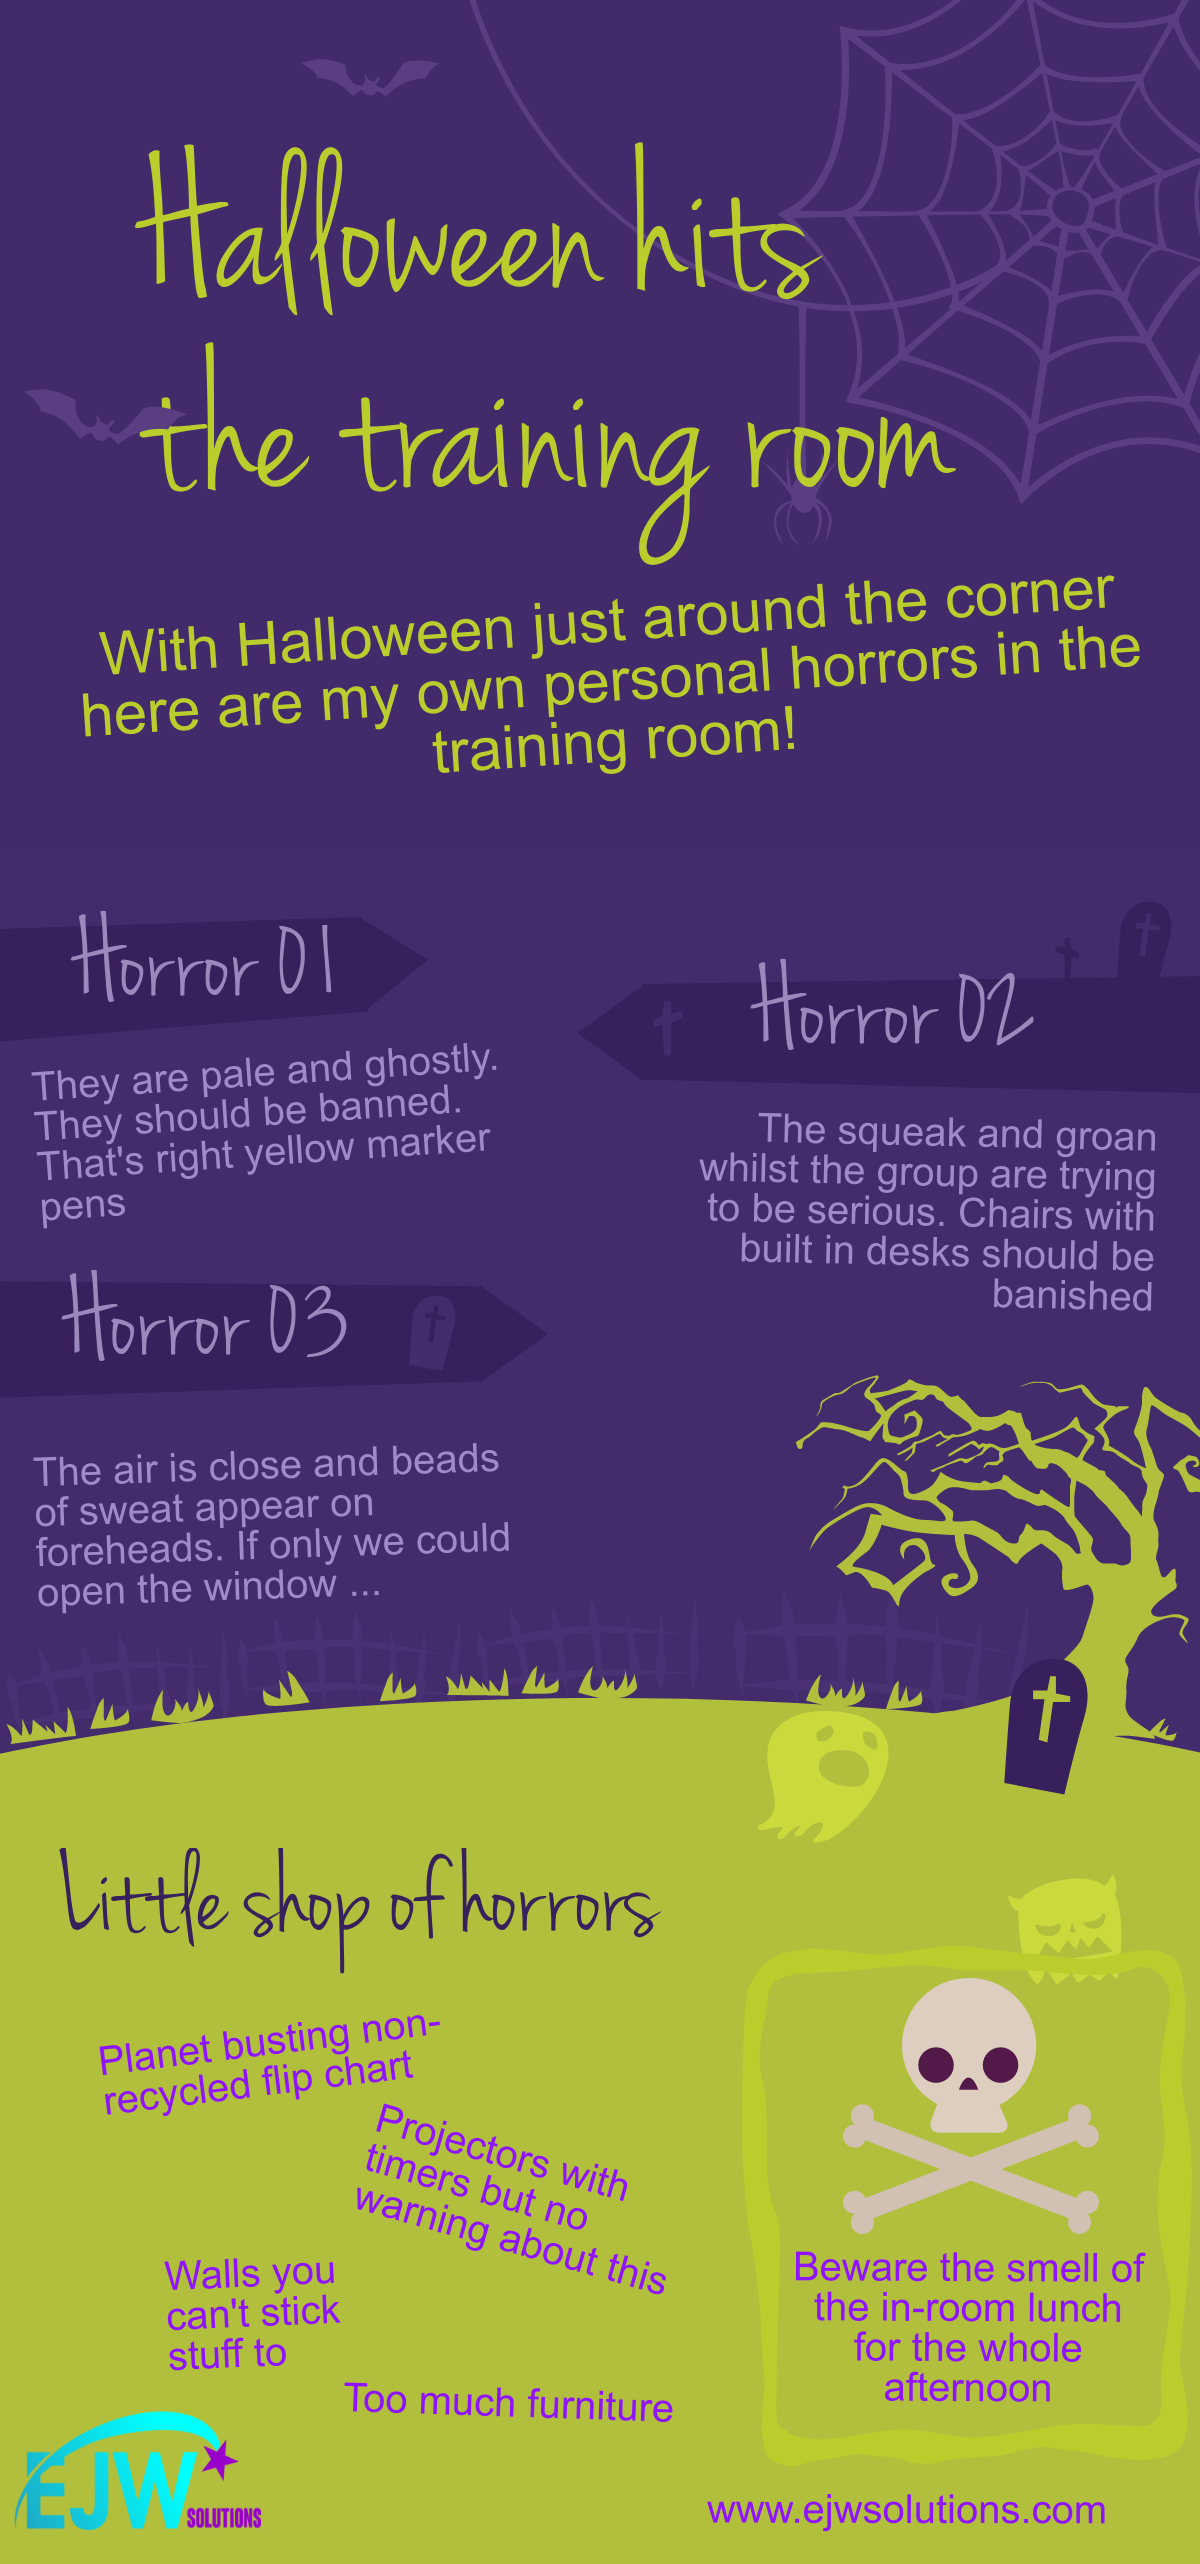 A spooky collection of training room horrors